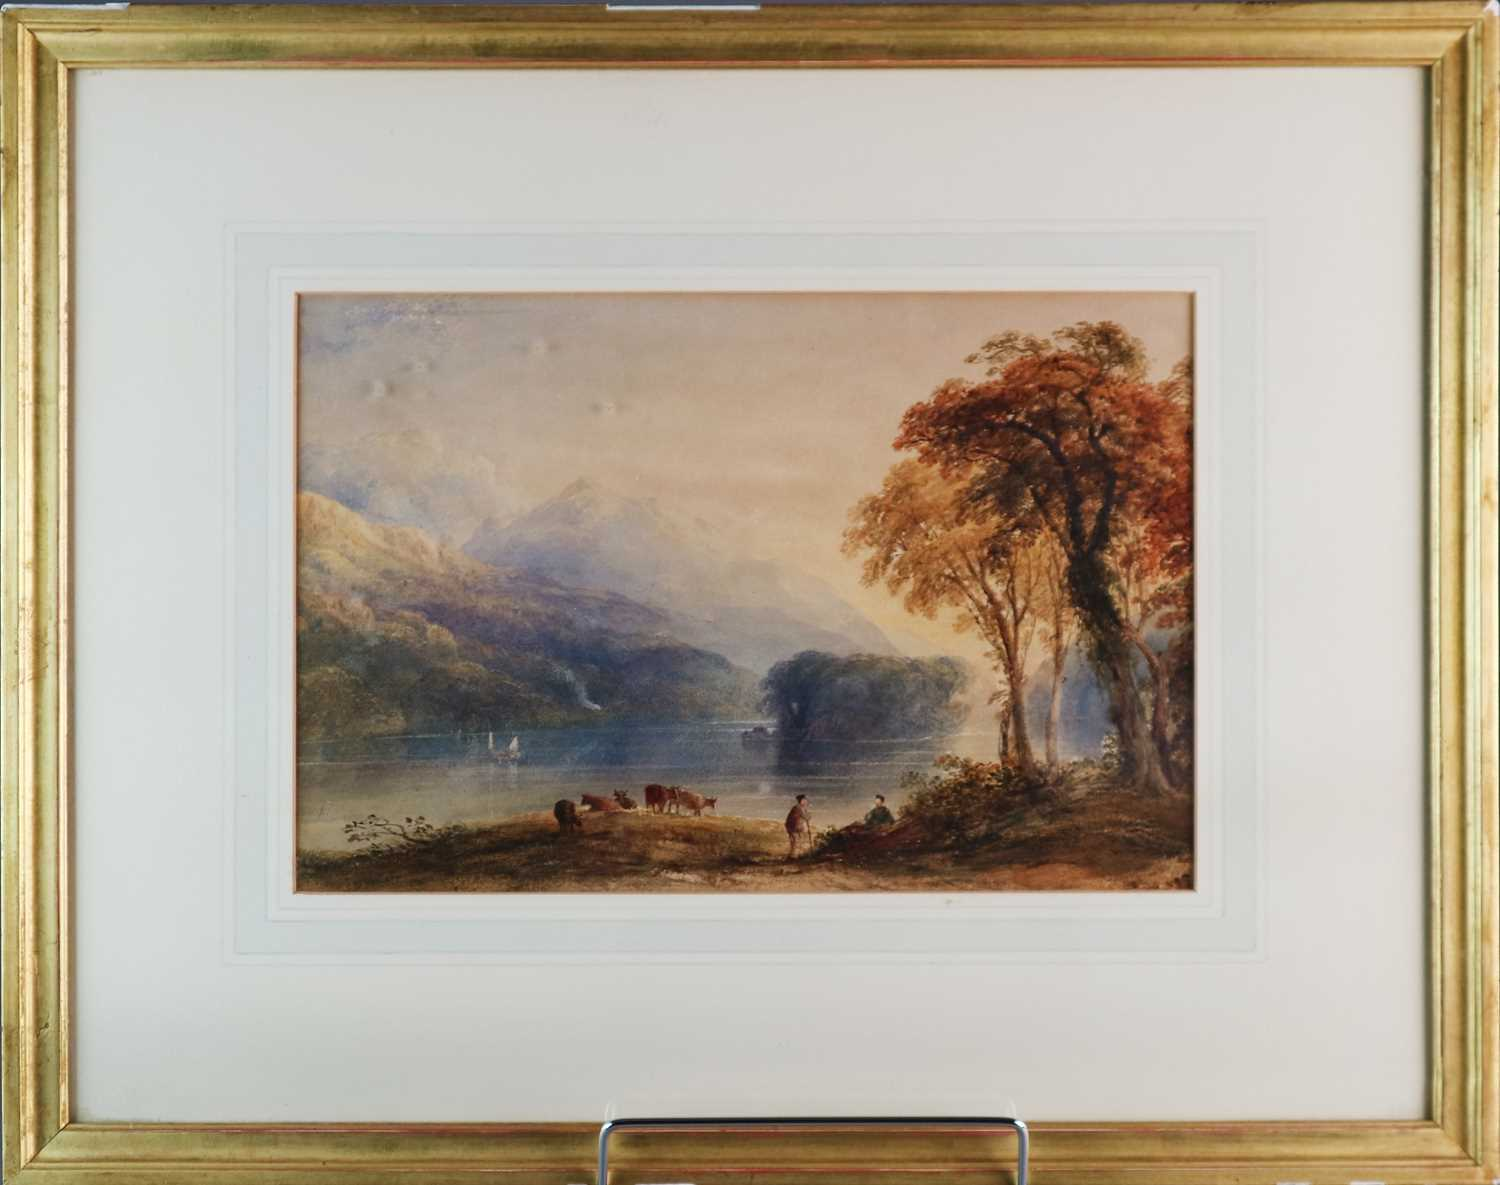 Anthony Vandyke Copley Fielding RWS (1787-1855) Two Landscapes inc. Windermere - Image 3 of 6